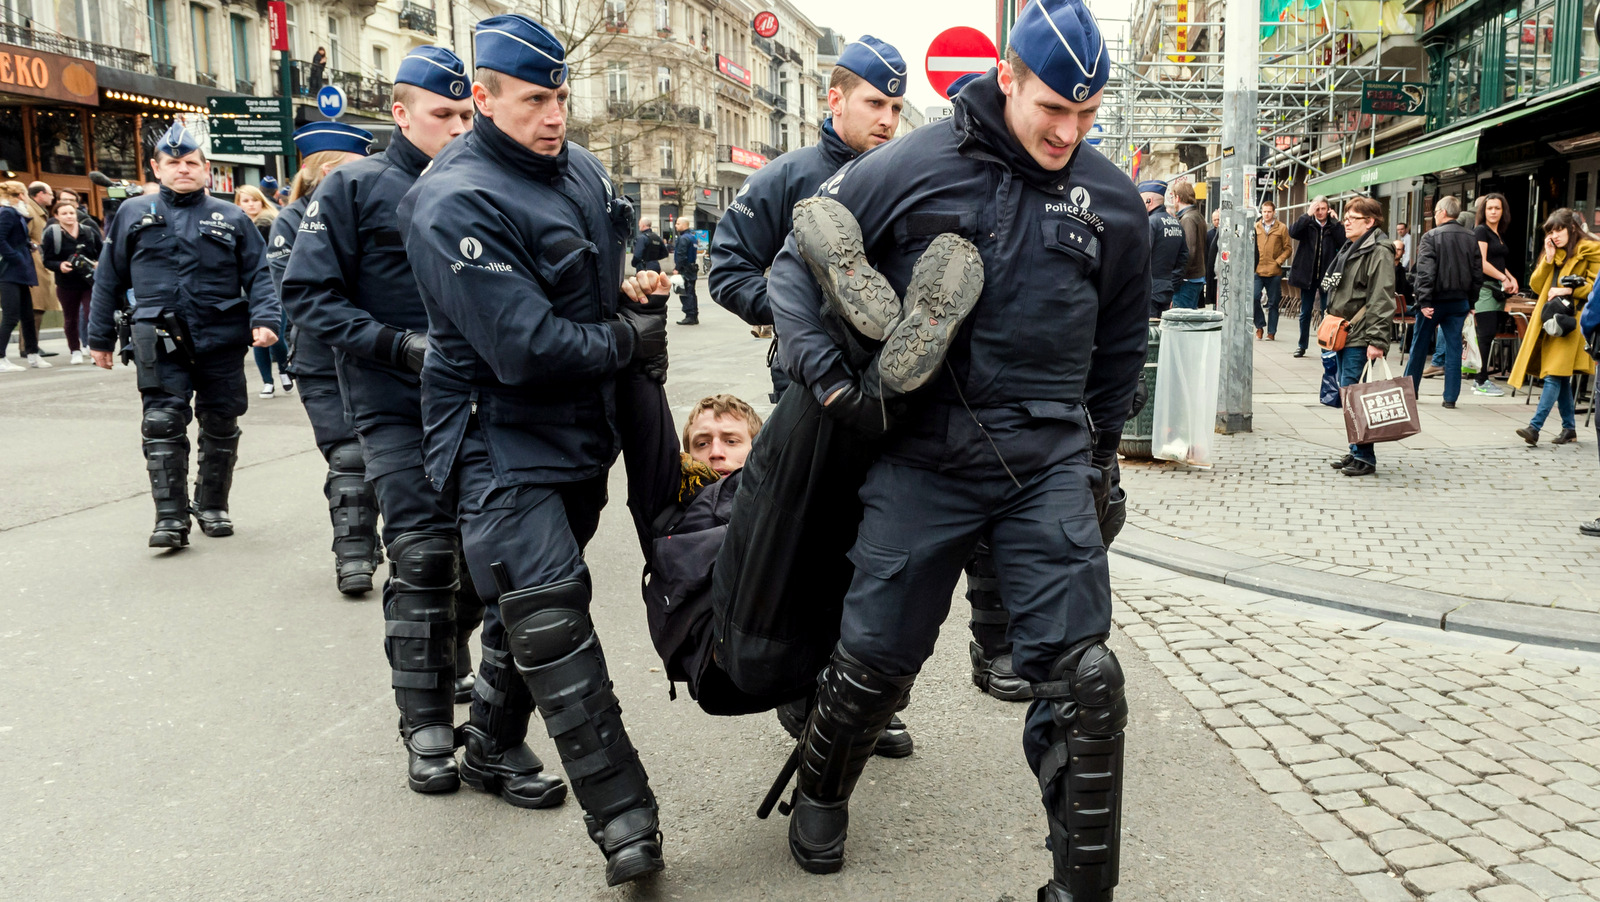 Policemen detain a man at the Place de la Bourse in Brussels, Belgium, after authorities banned all marches in Brussels. (AP Photo/Geert Vanden Wijngaert)